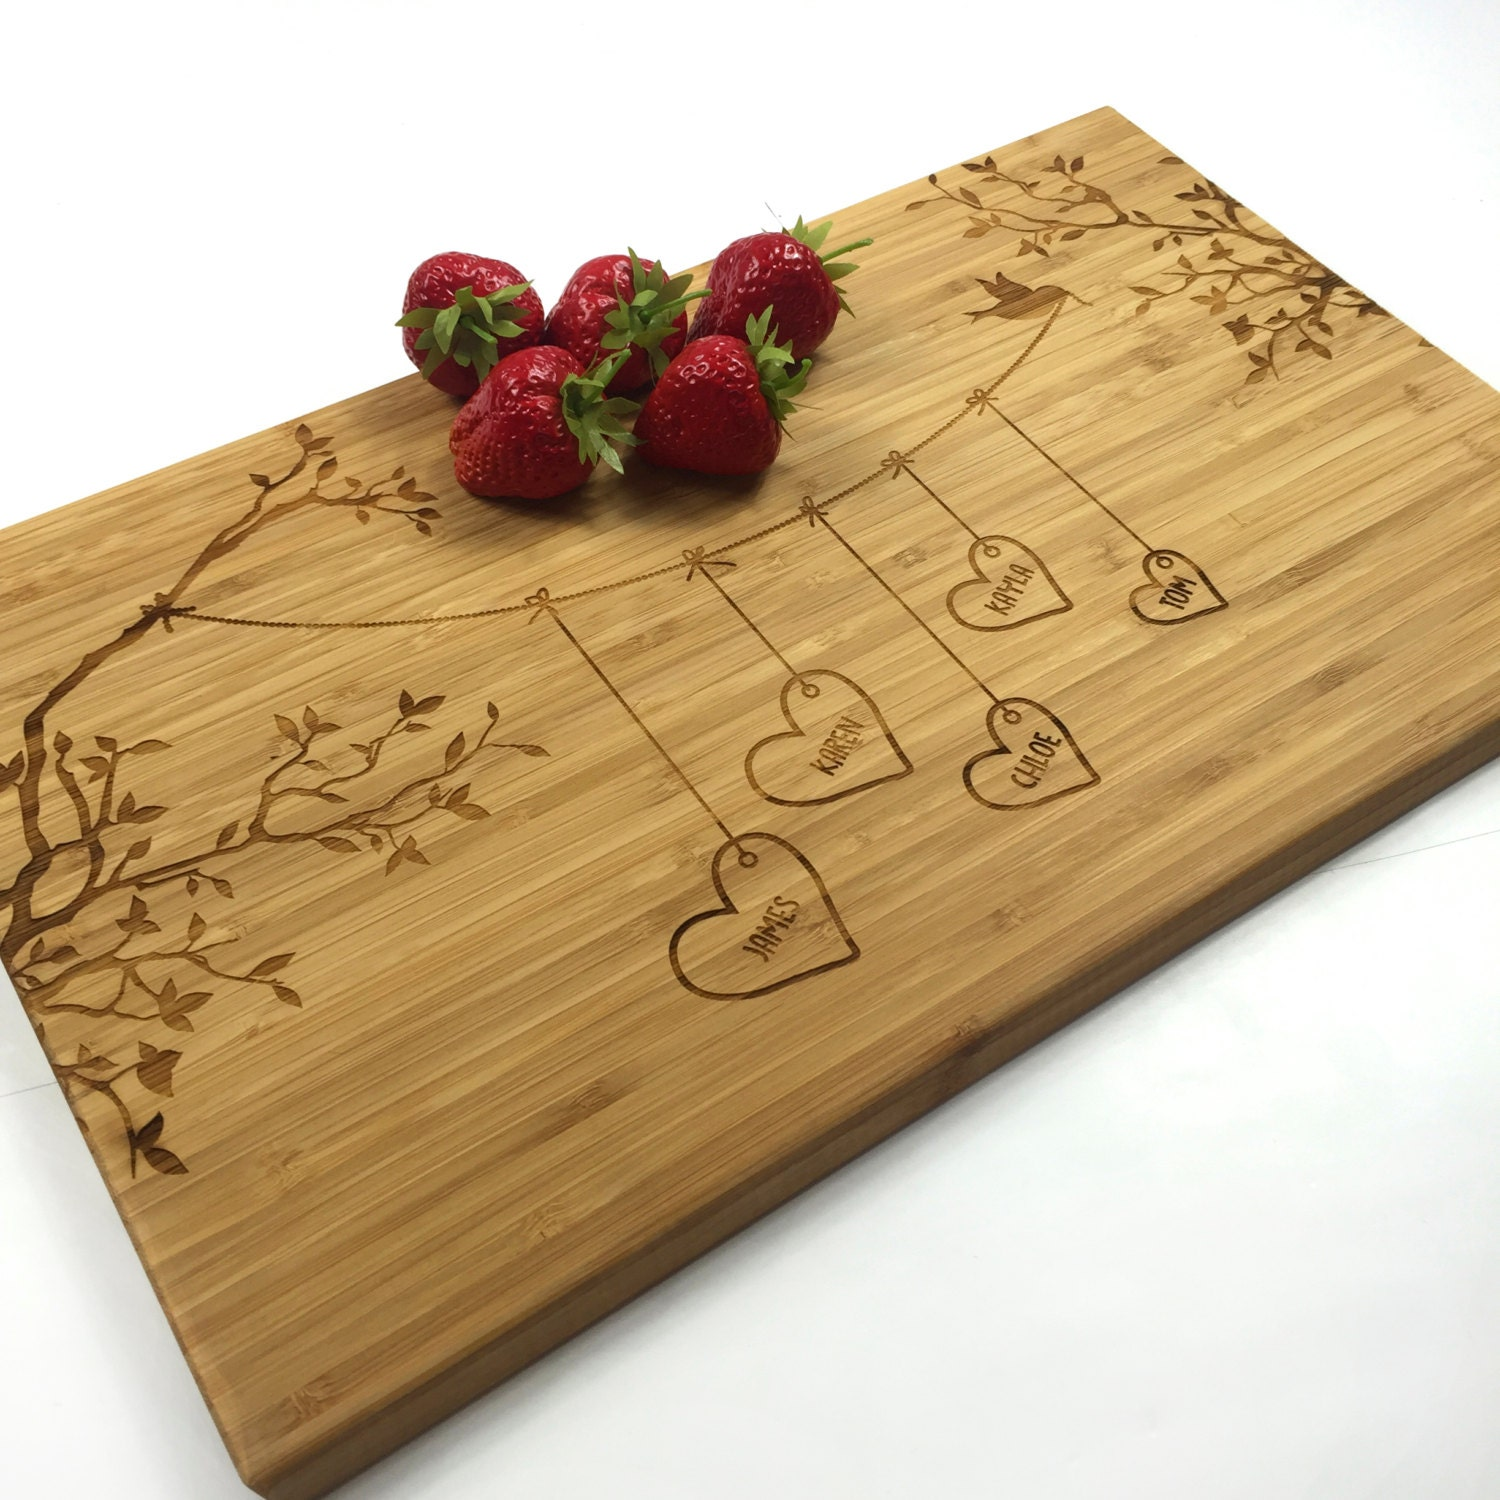 Personalized Cutting Boards ~ Cutting board personalized wedding gift blended family names